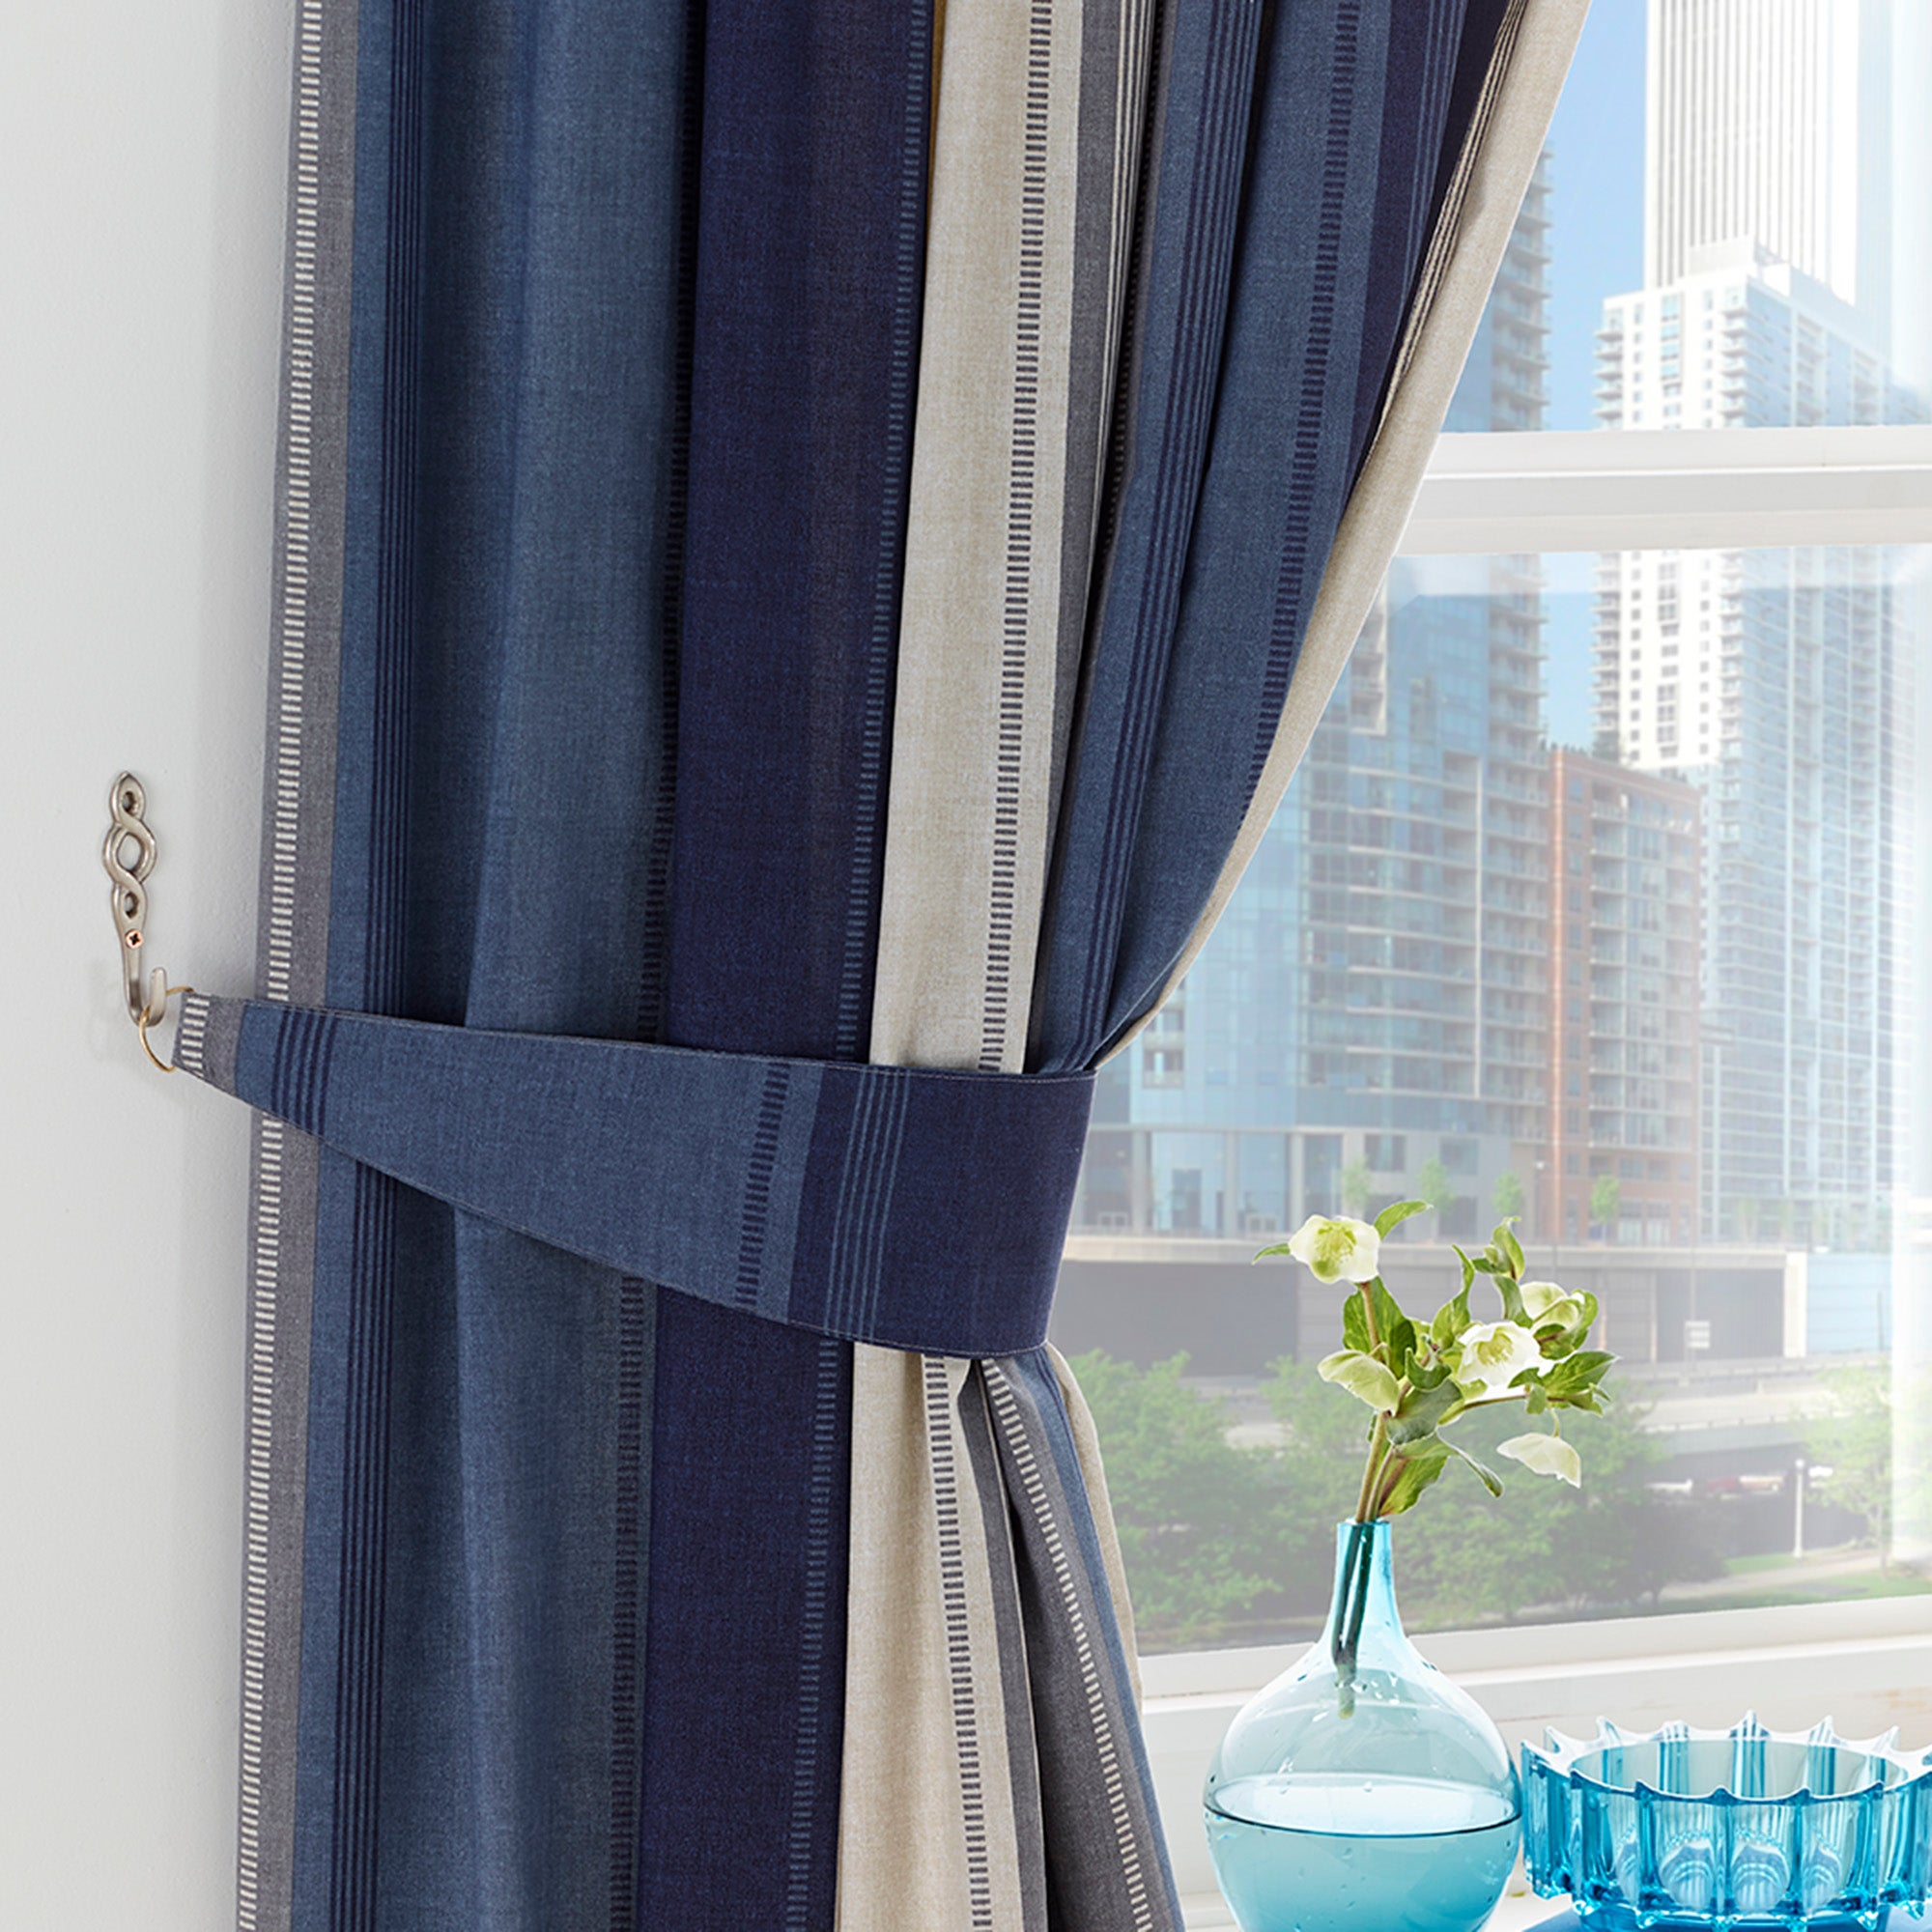 Blue Finley Pencil Pleat Curtains